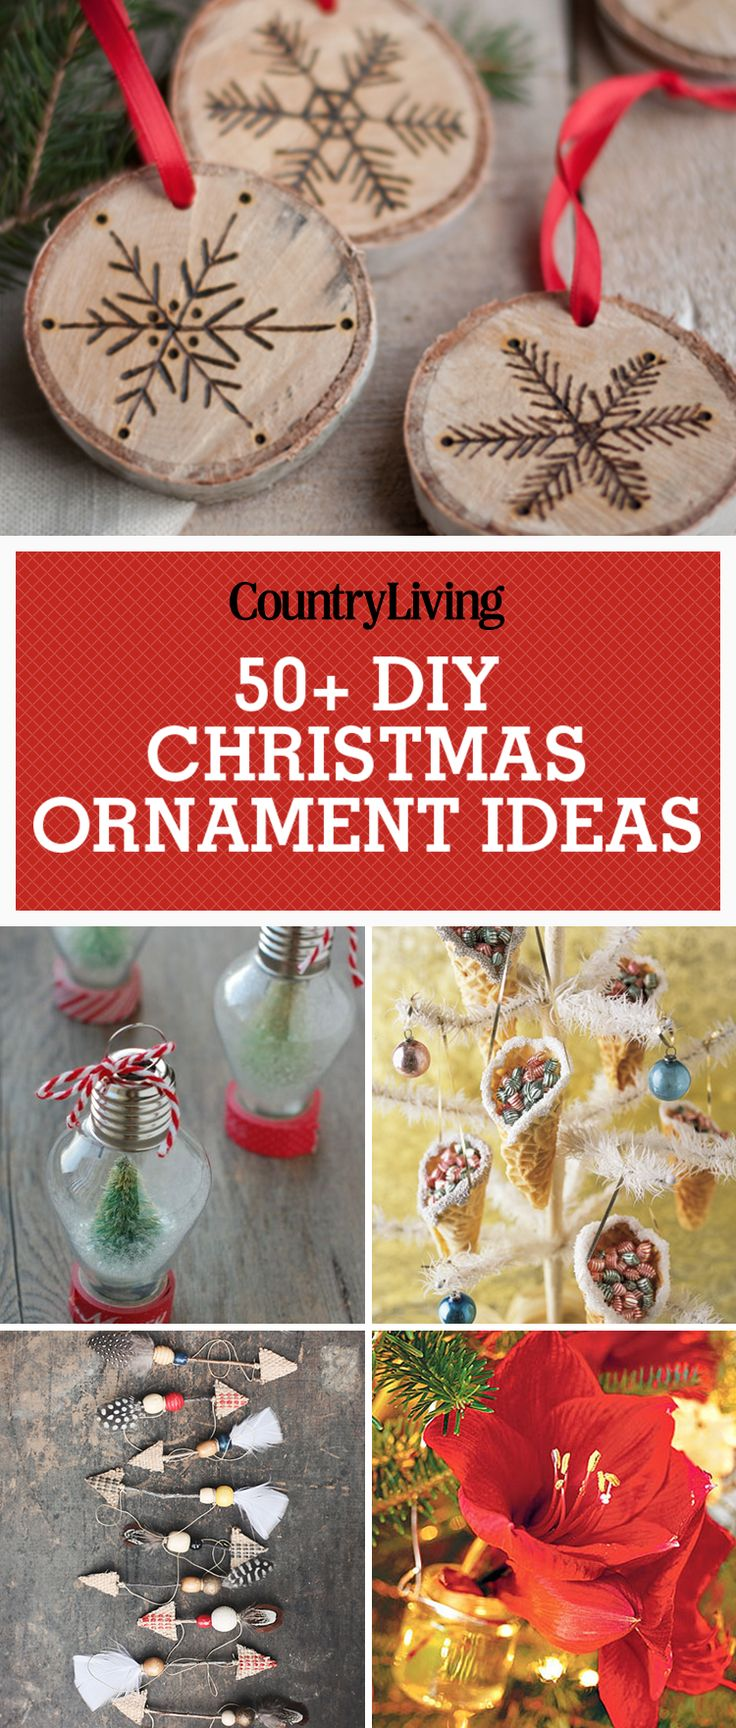 17 best images about christmas decorations crafts on for How to design a christmas ornament